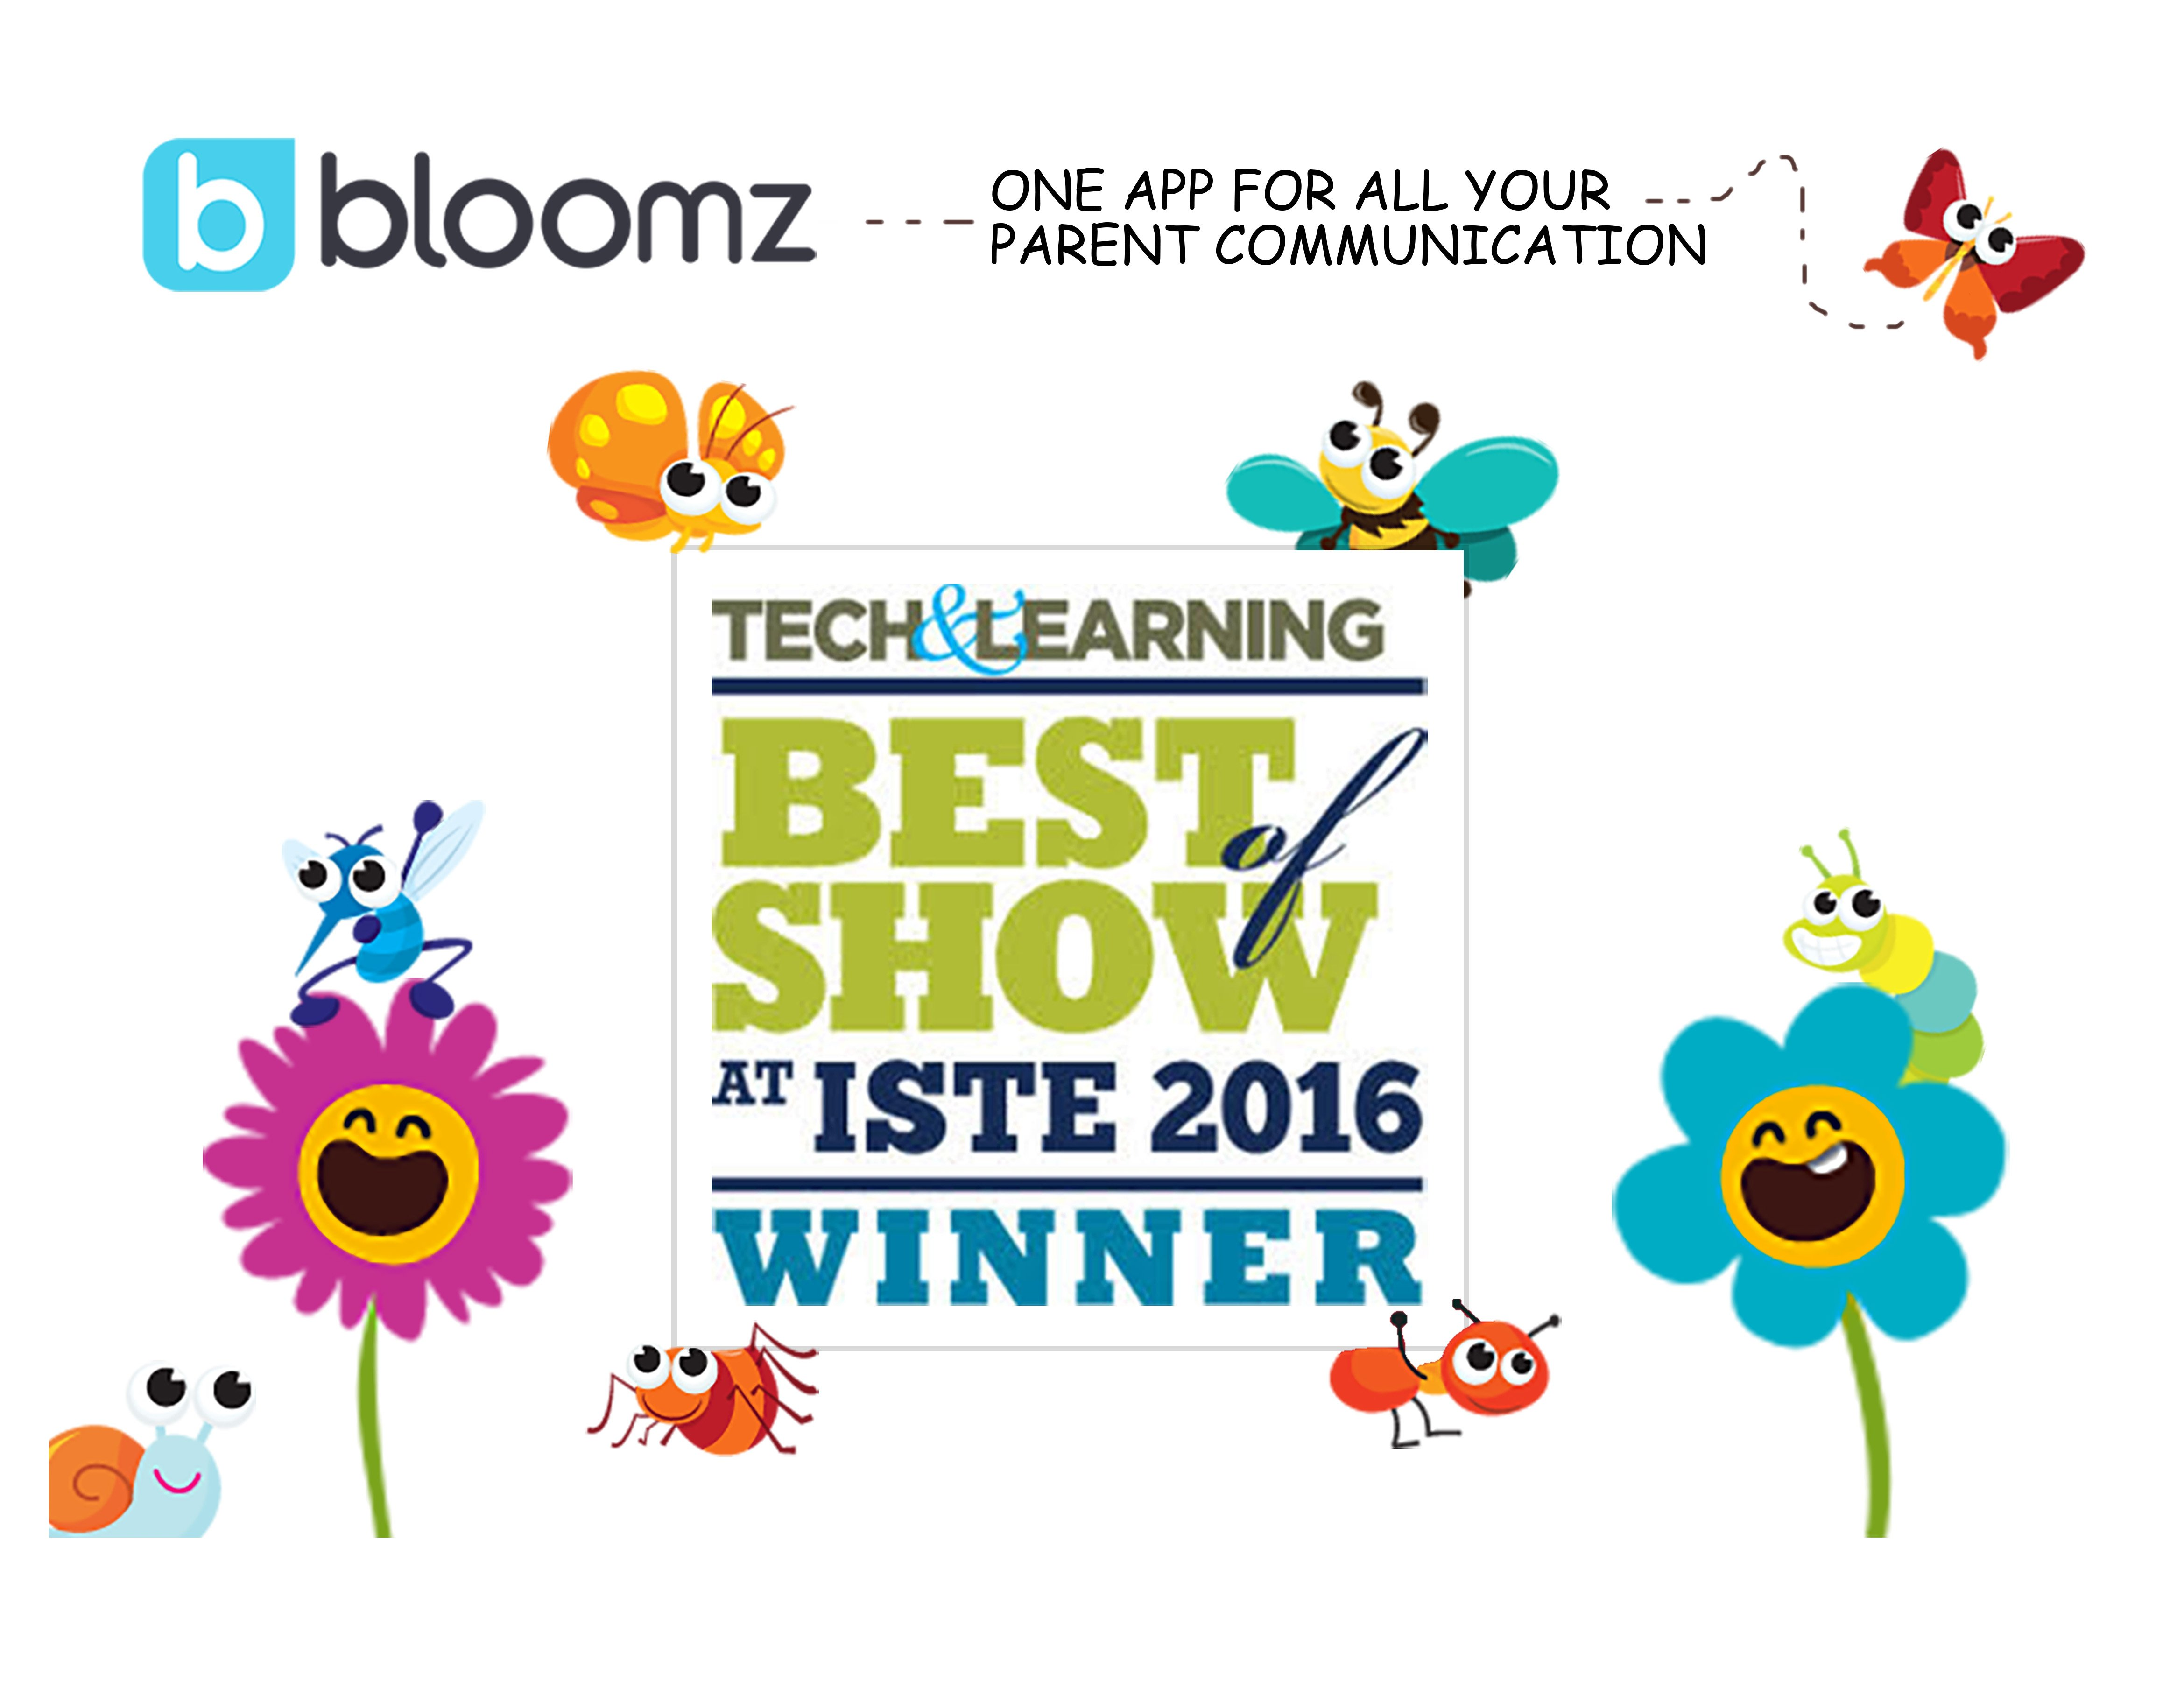 Bloomz Wins Best of Show at ISTE 2016 by Tech & Learning